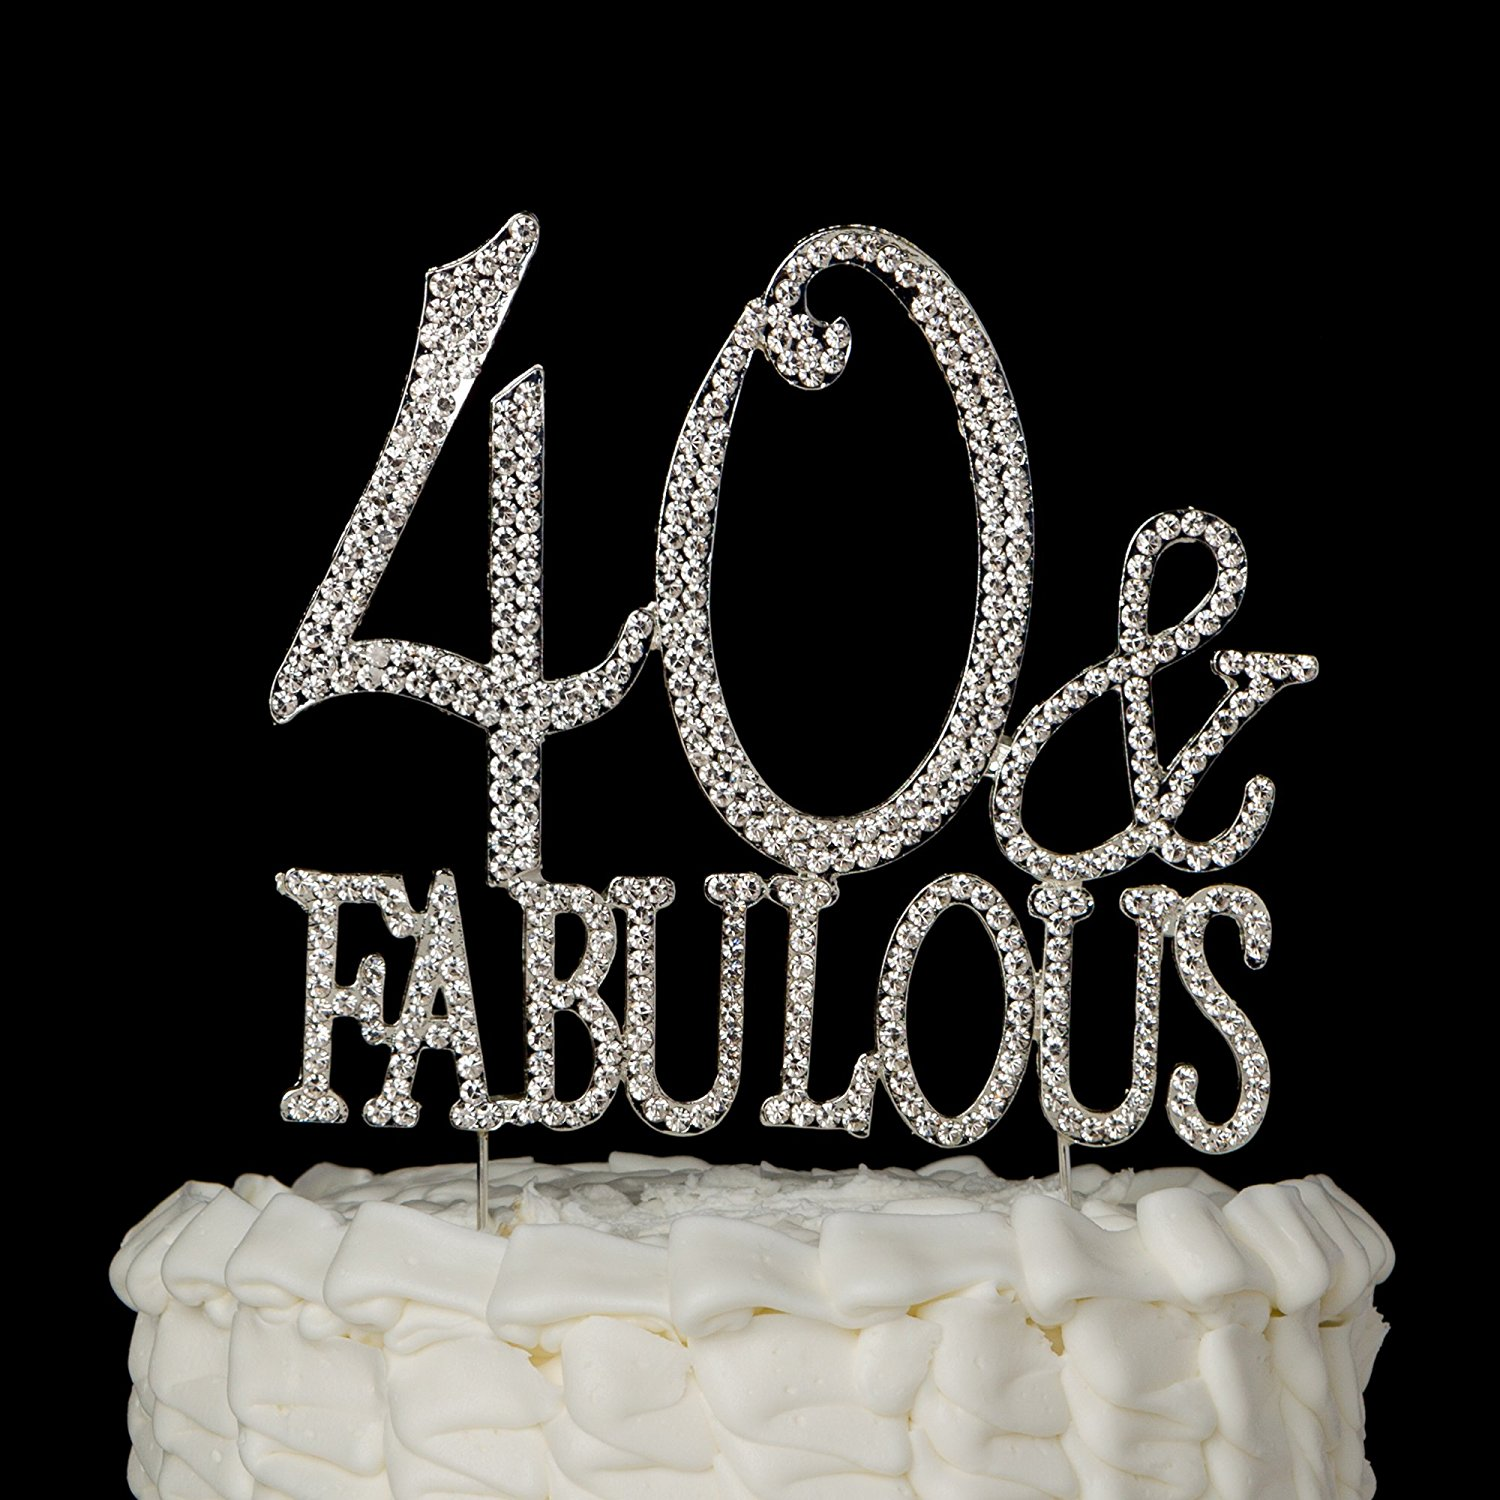 Cheap 50 And Fabulous Decorations Find 50 And Fabulous Decorations